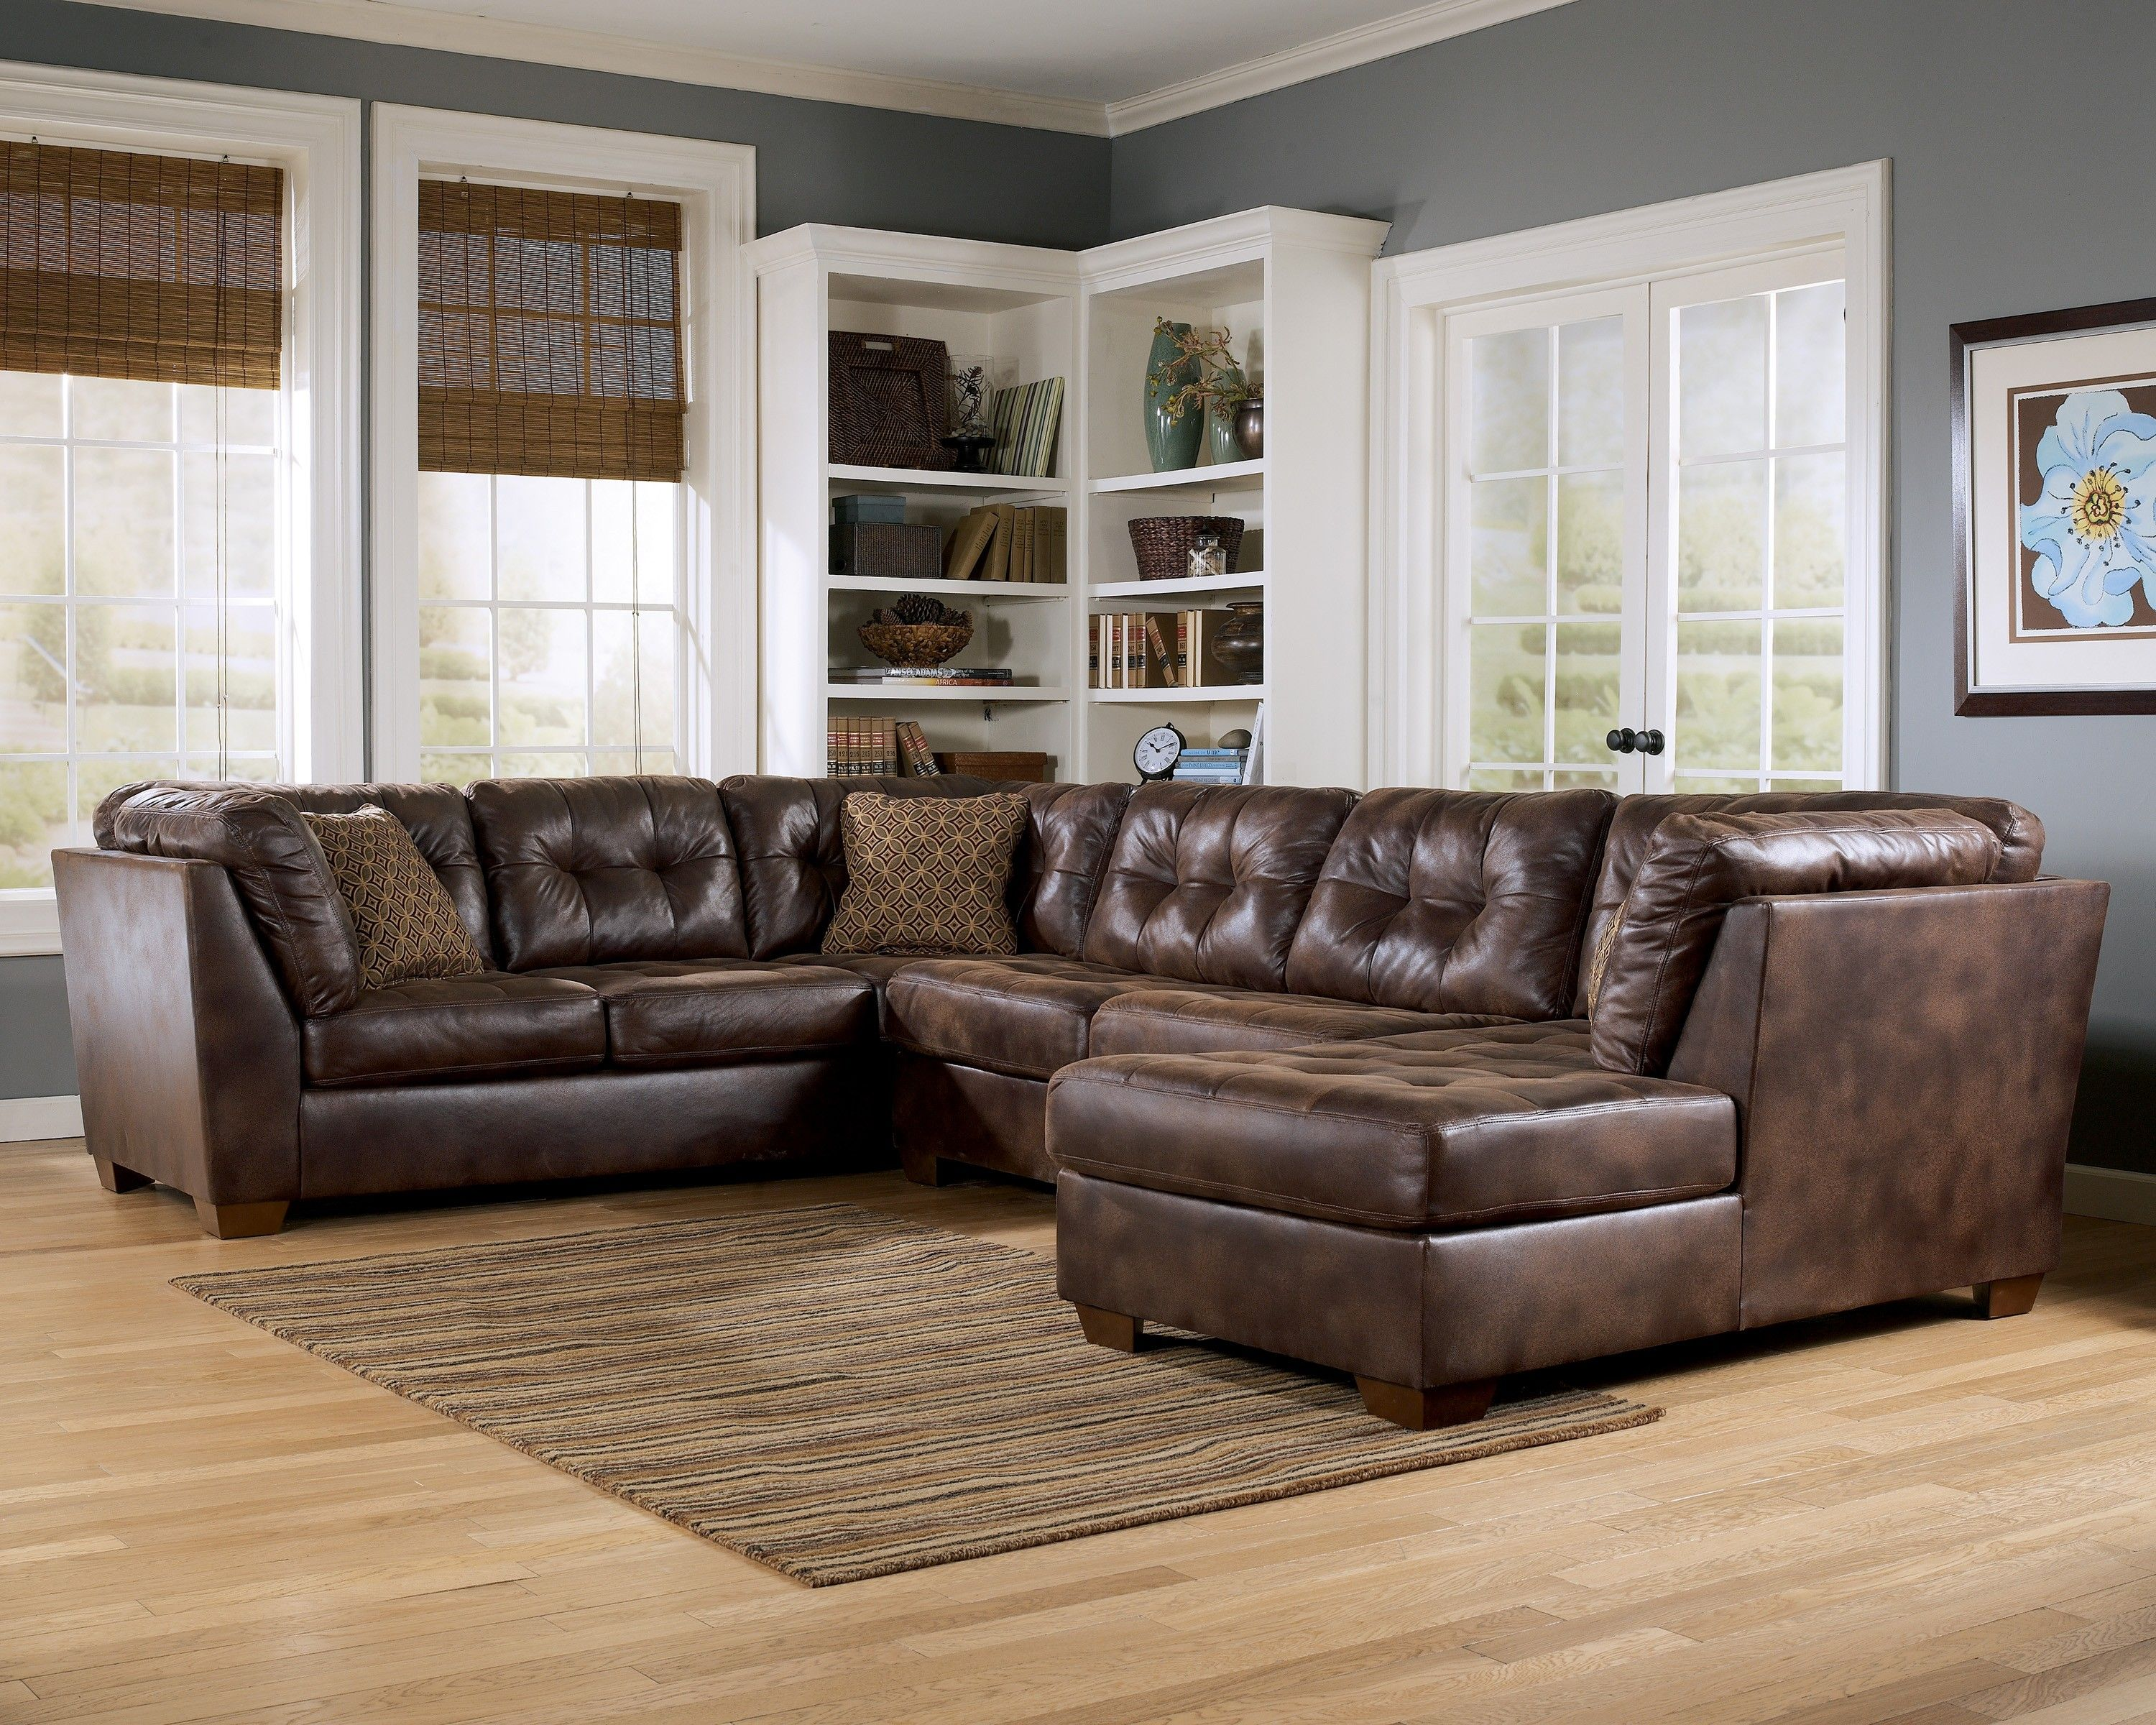 Attractive Furniture,Affordable Brown Leather Cheap Living Room Sectionals Sofa With  Brown Striped Rug,Beautiful